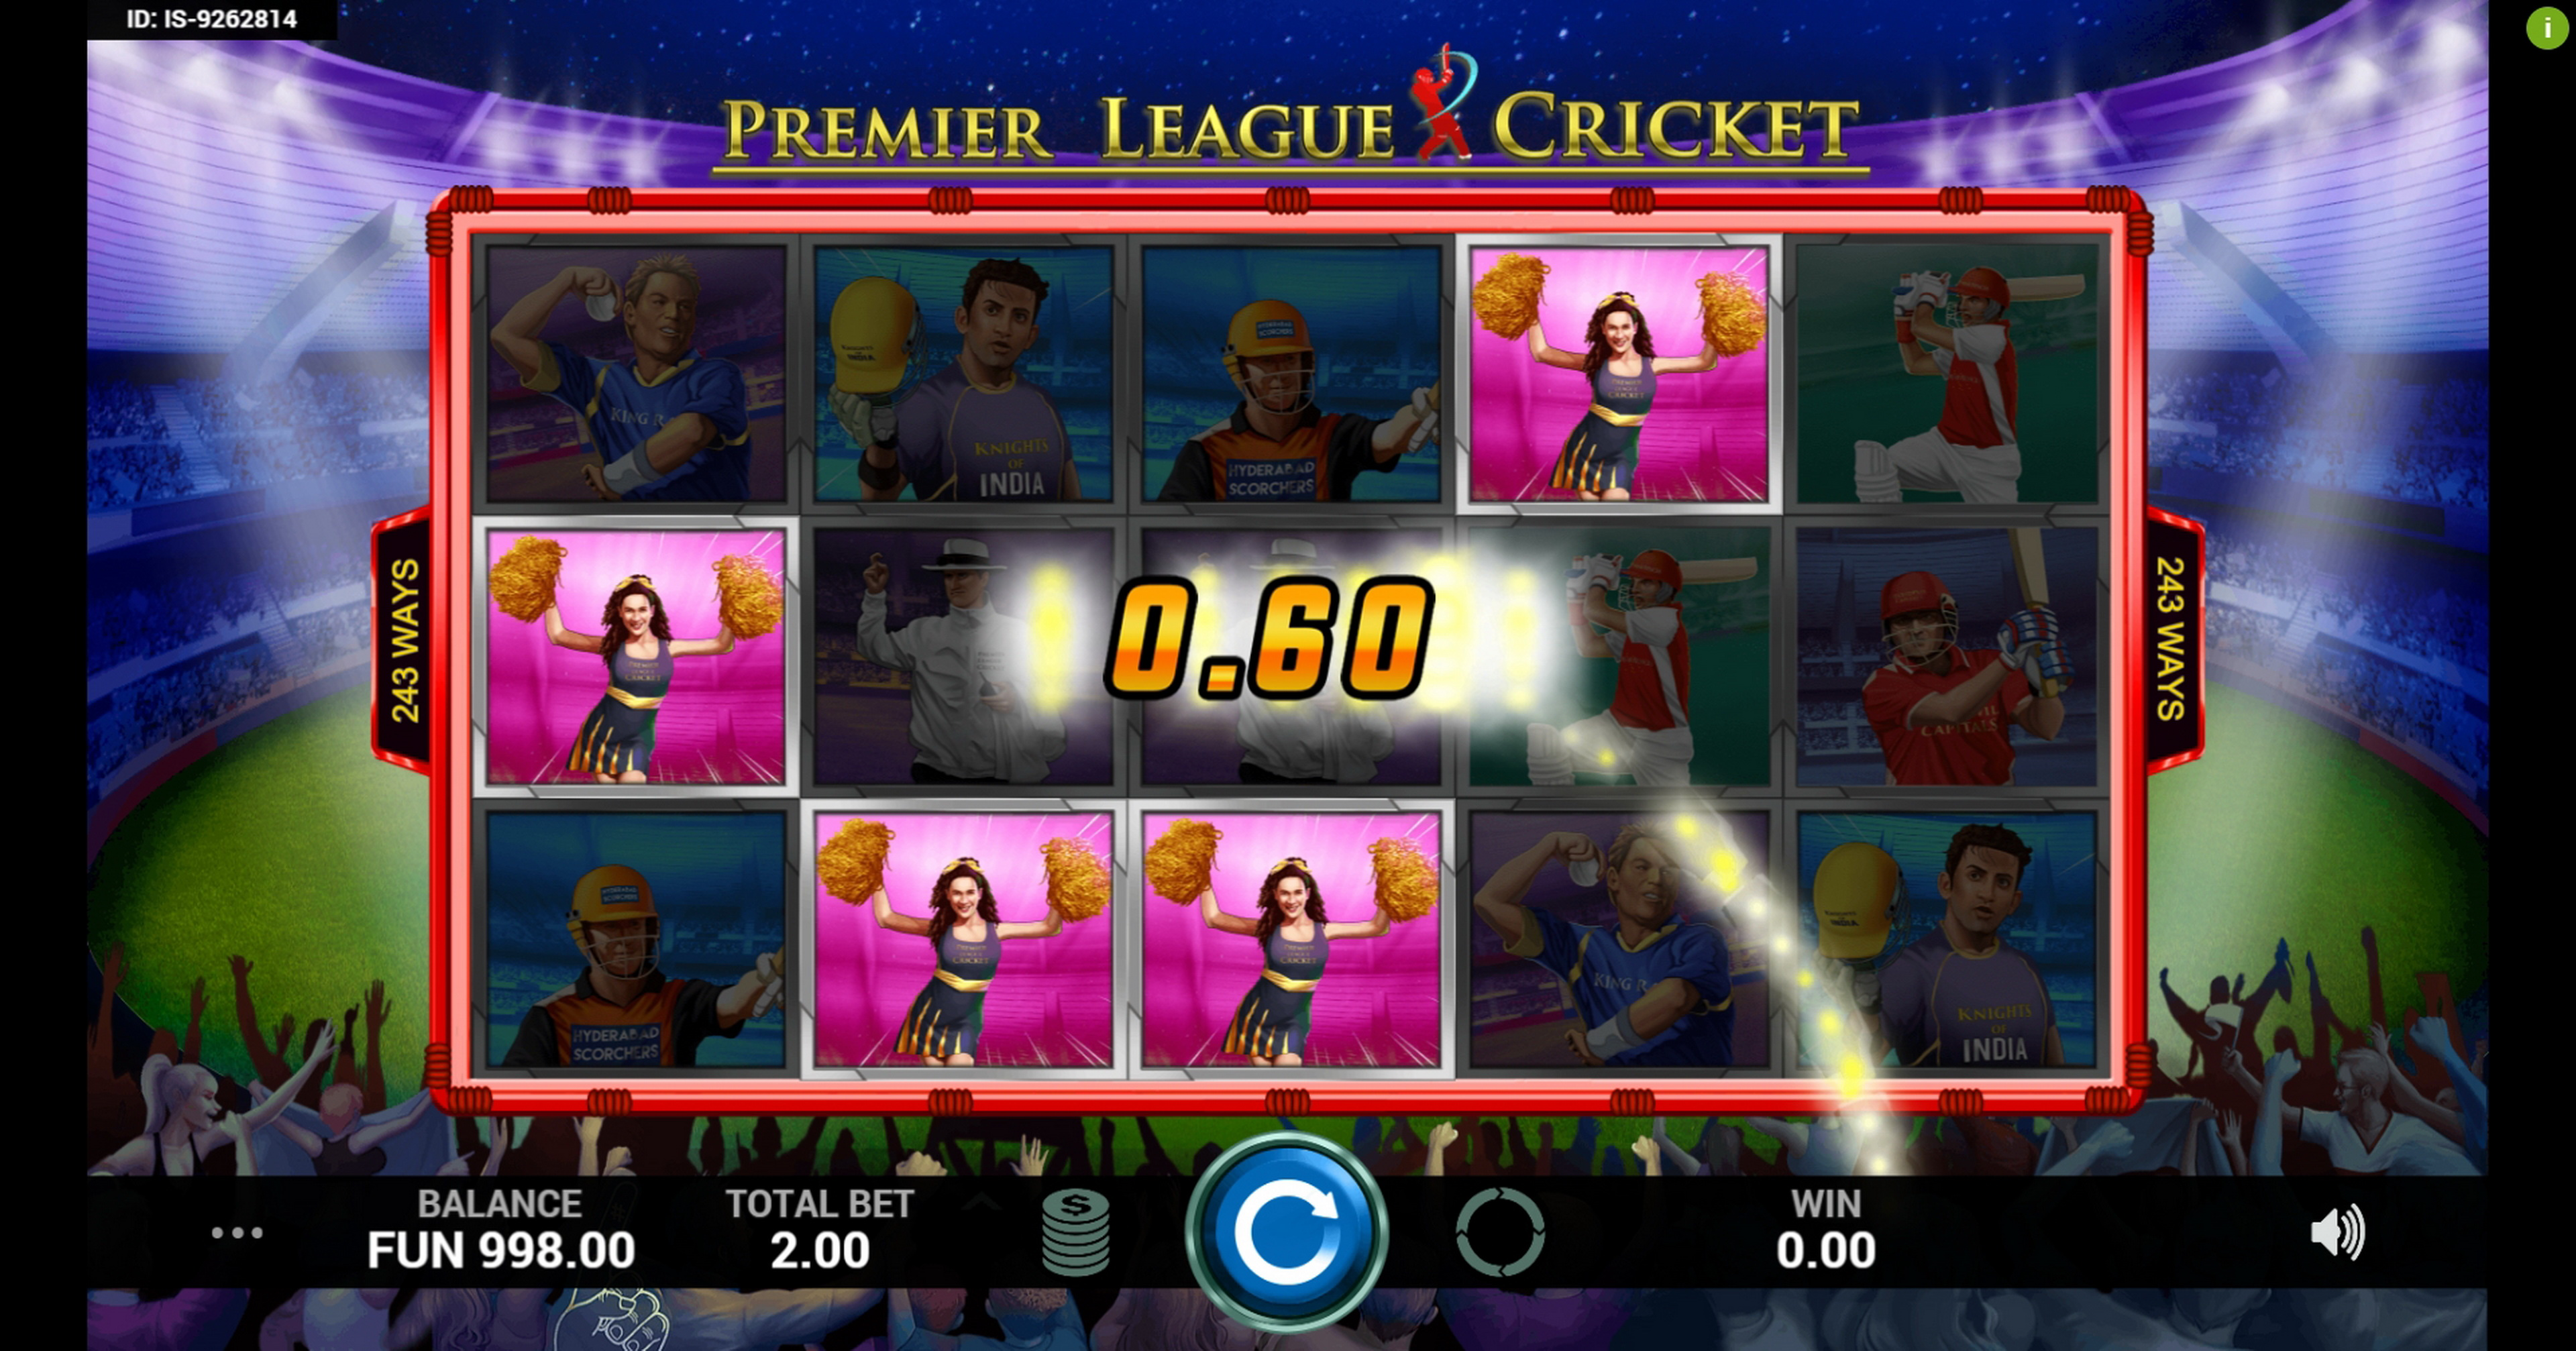 Win Money in Premier League Cricket Free Slot Game by Indi Slots